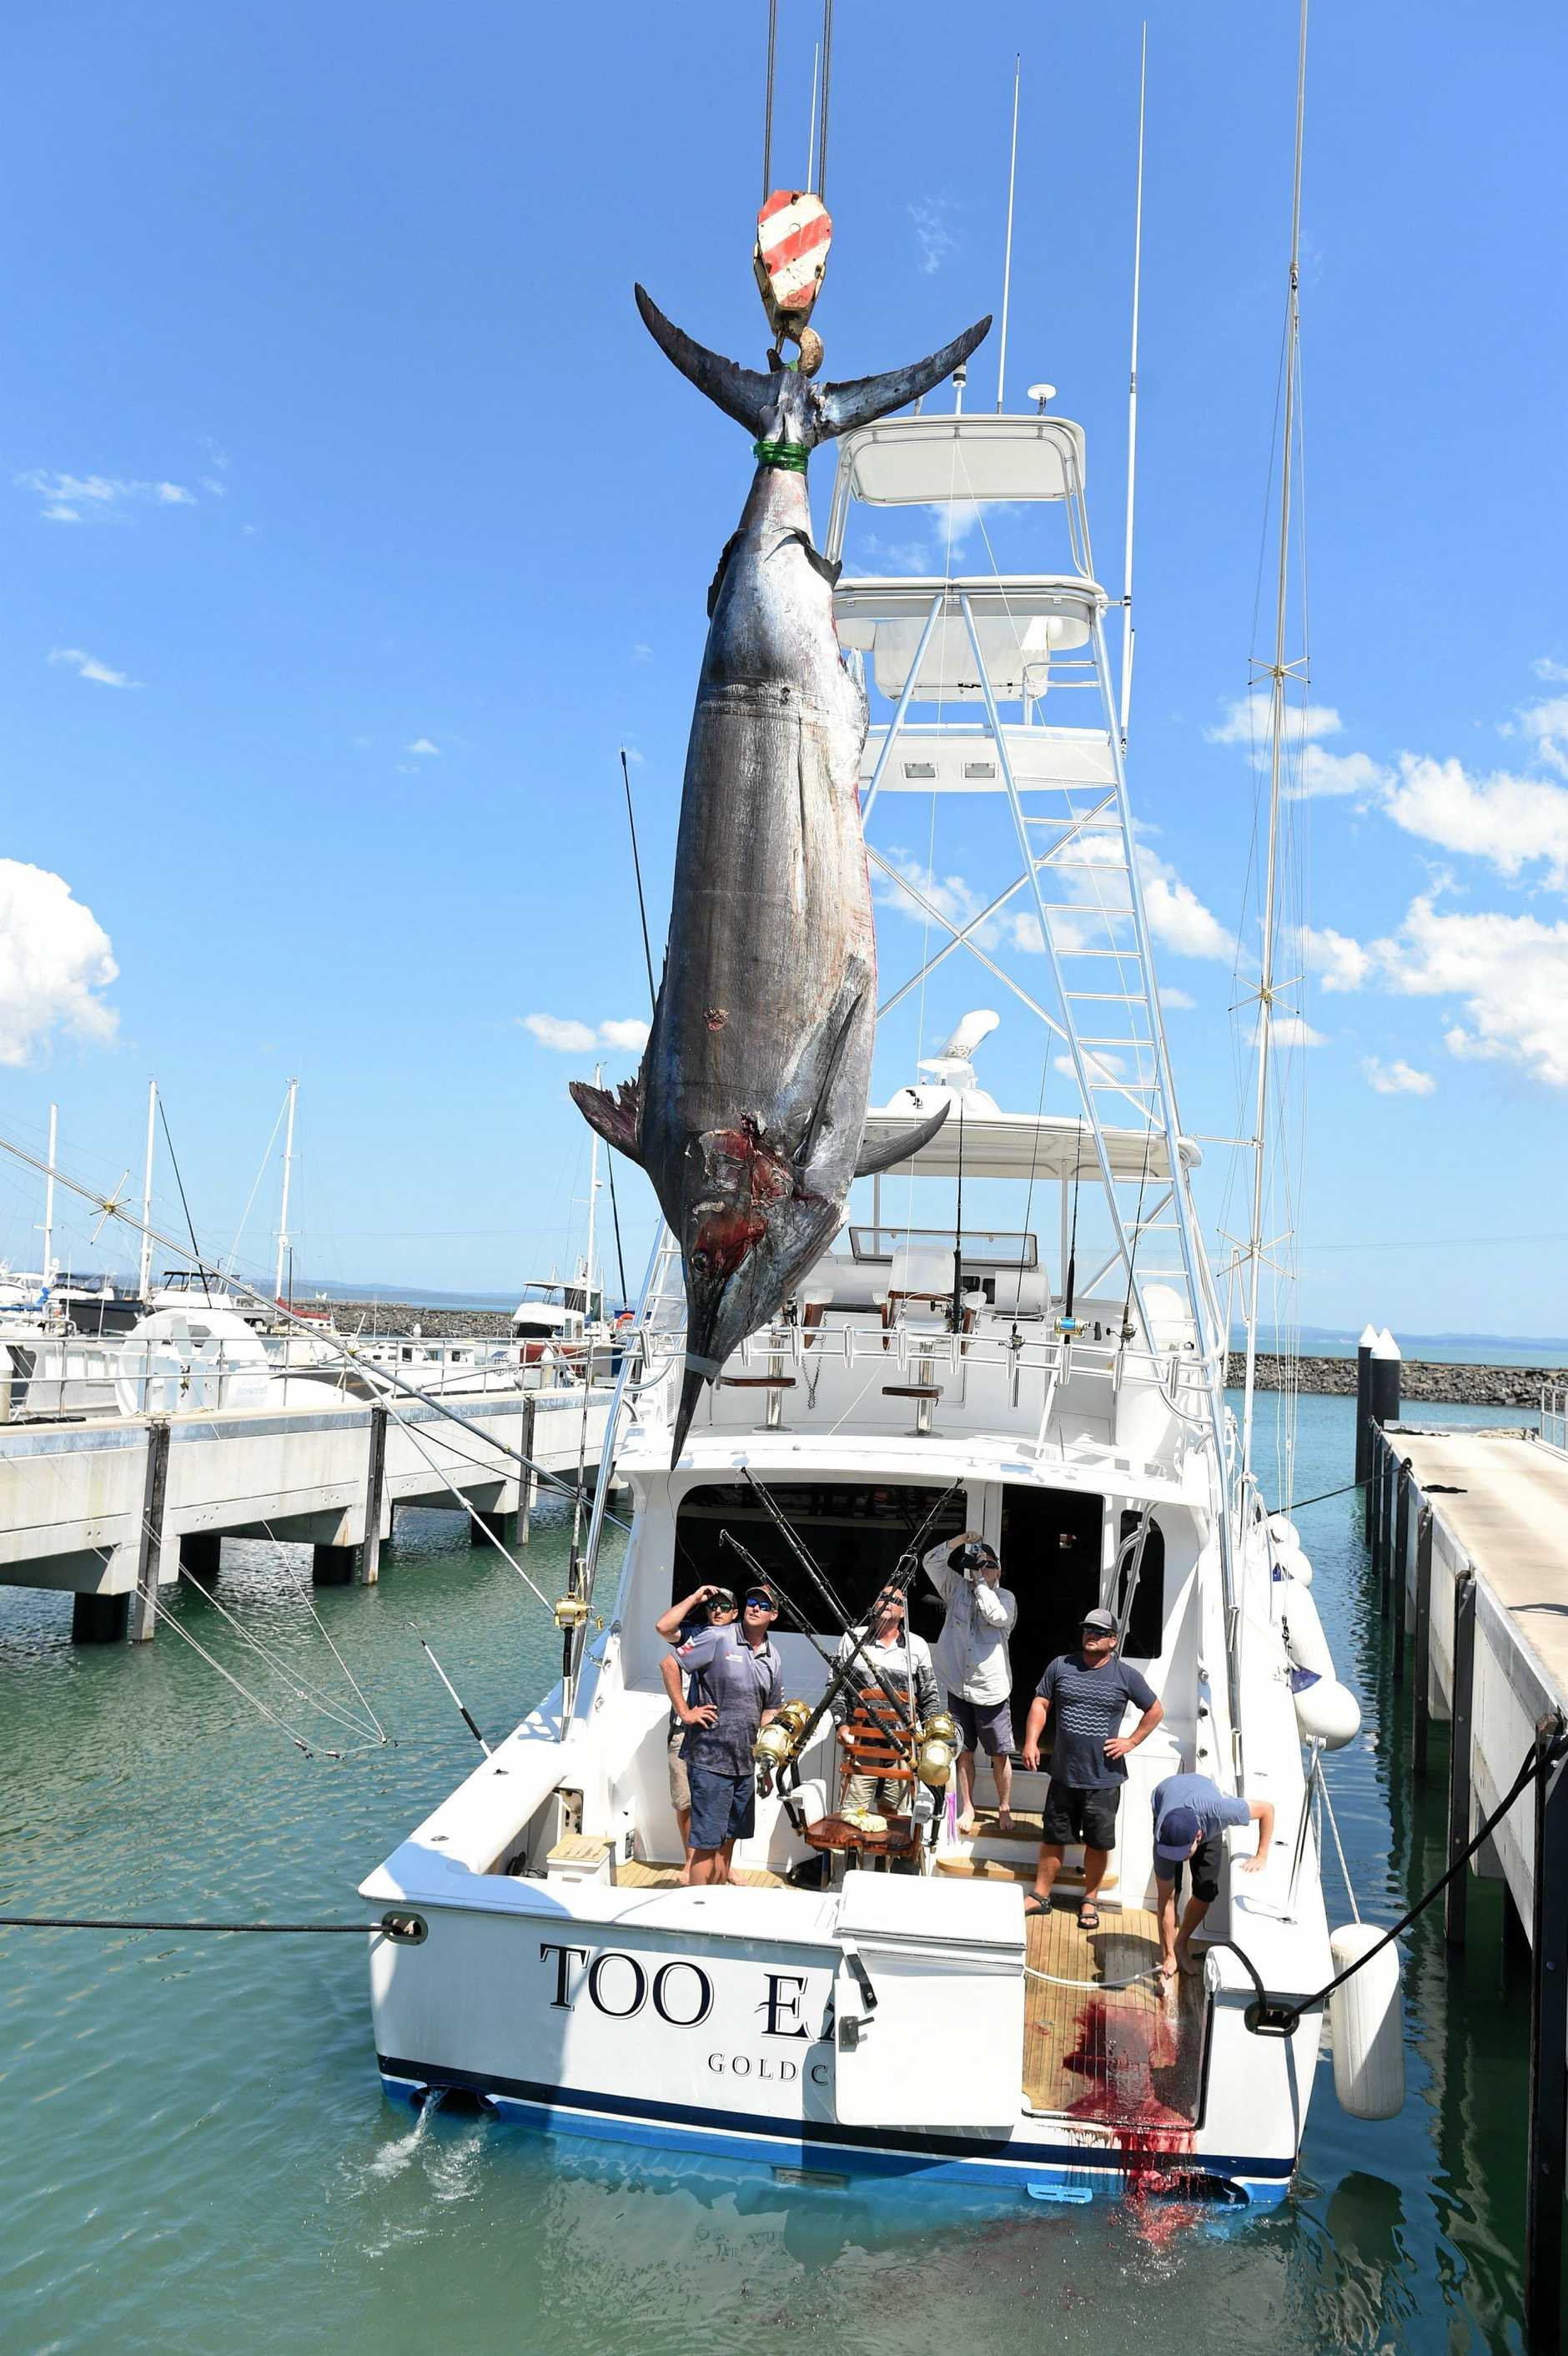 The 1431 lb black marlin is craned off the Too Easy II at the slipway in Hervey Bay.